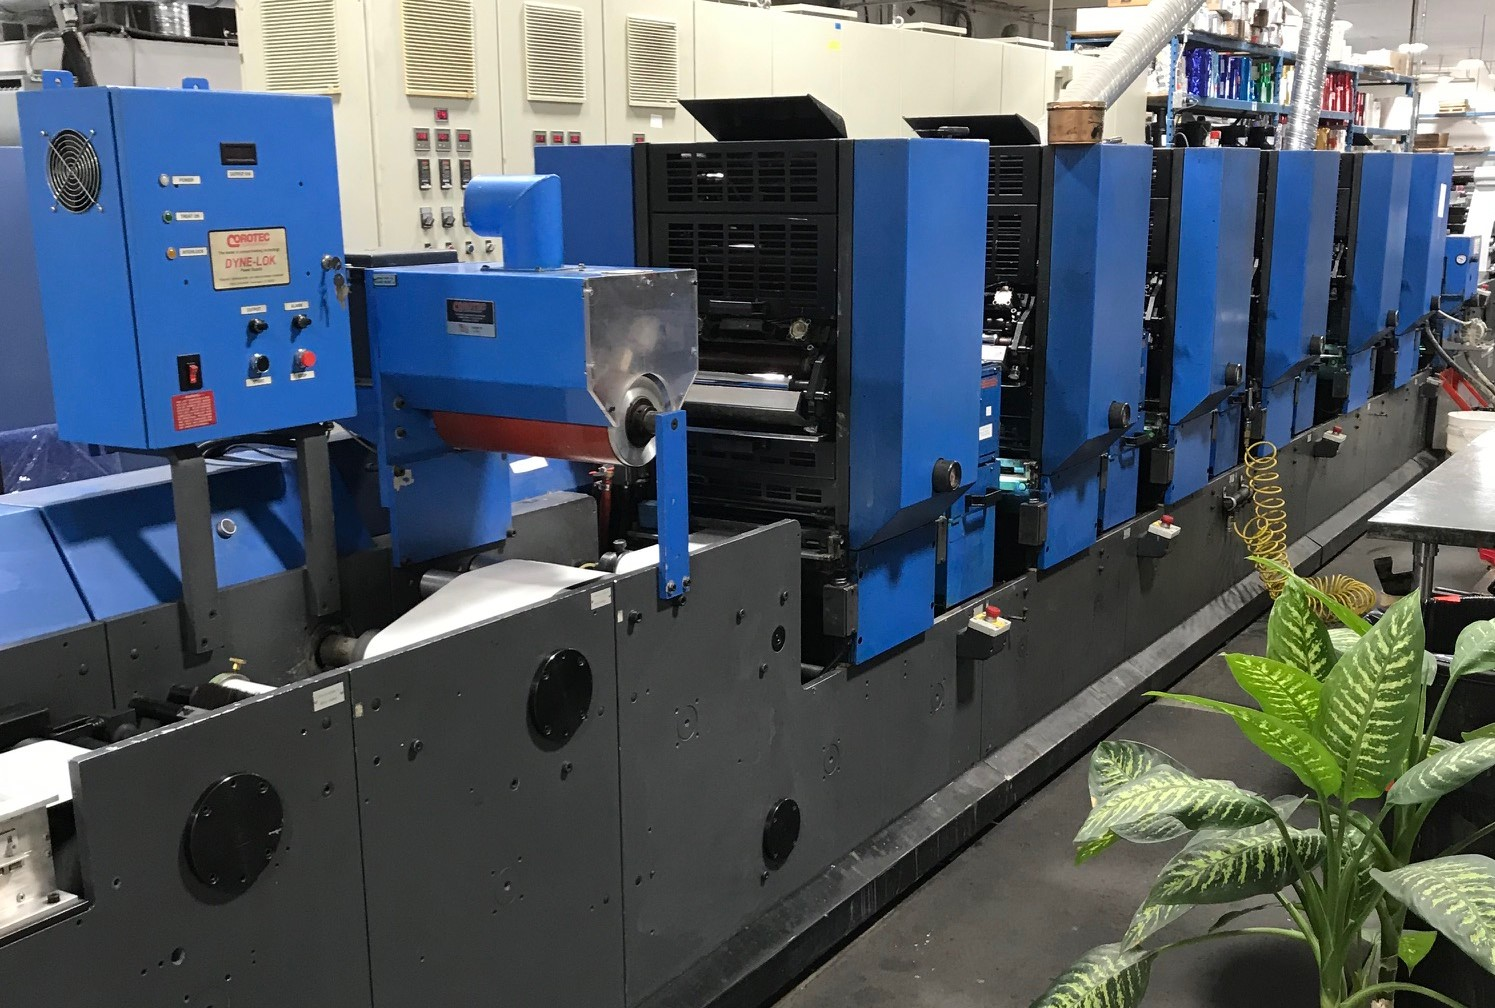 Gallus TCS250 - Used Flexo Printing Presses and Used Flexographic Equipment-0